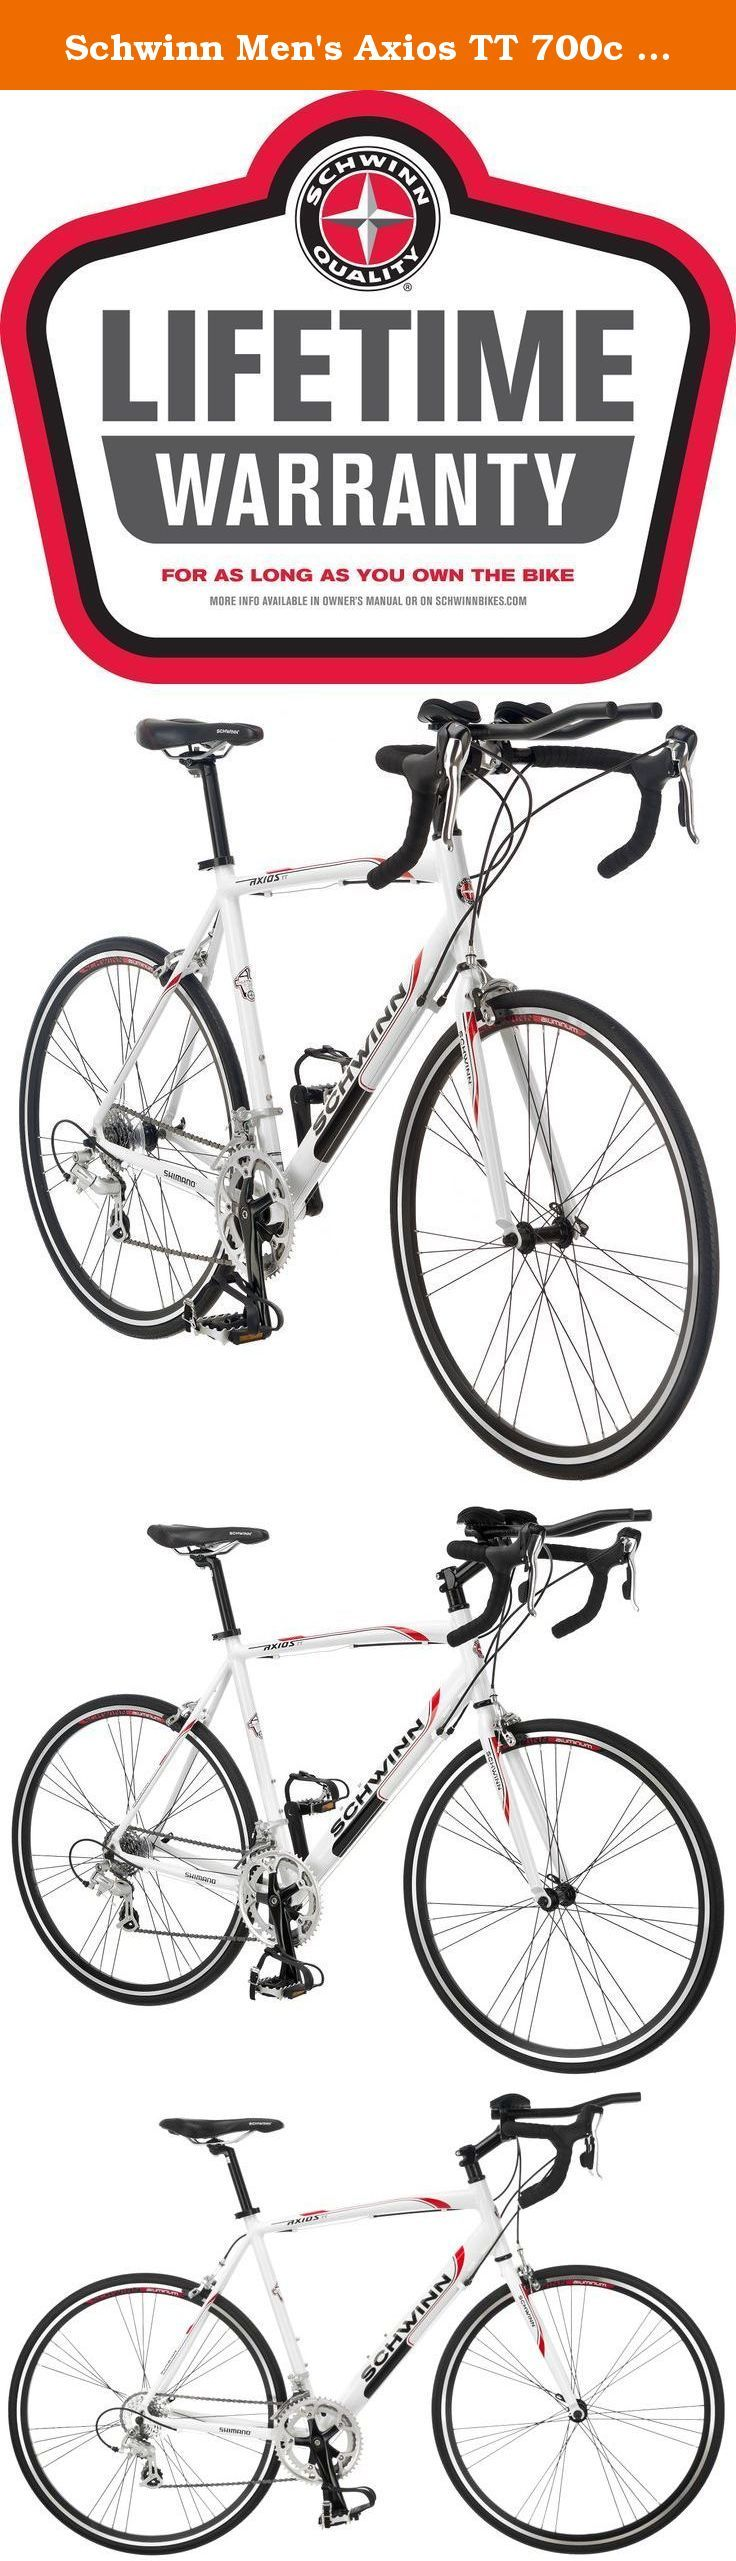 Schwinn Men's Axios TT 700c Drop Bar Triathlon Road Bicycle, White, 18-Inch Frame. The Schwinn Axios TT men's road bicycle is the perfect drop bar road bike with triathalon handlebars for the bike path or just going out for a good workout or the novice triathelete, lightweight and responsive makes this the perfect road bike. Equipped with a Schwinn aluminum road framefor quick and agile riding, Full Shimano 14 speed rear derailleur with integrated brake lever shifting for quick gear...